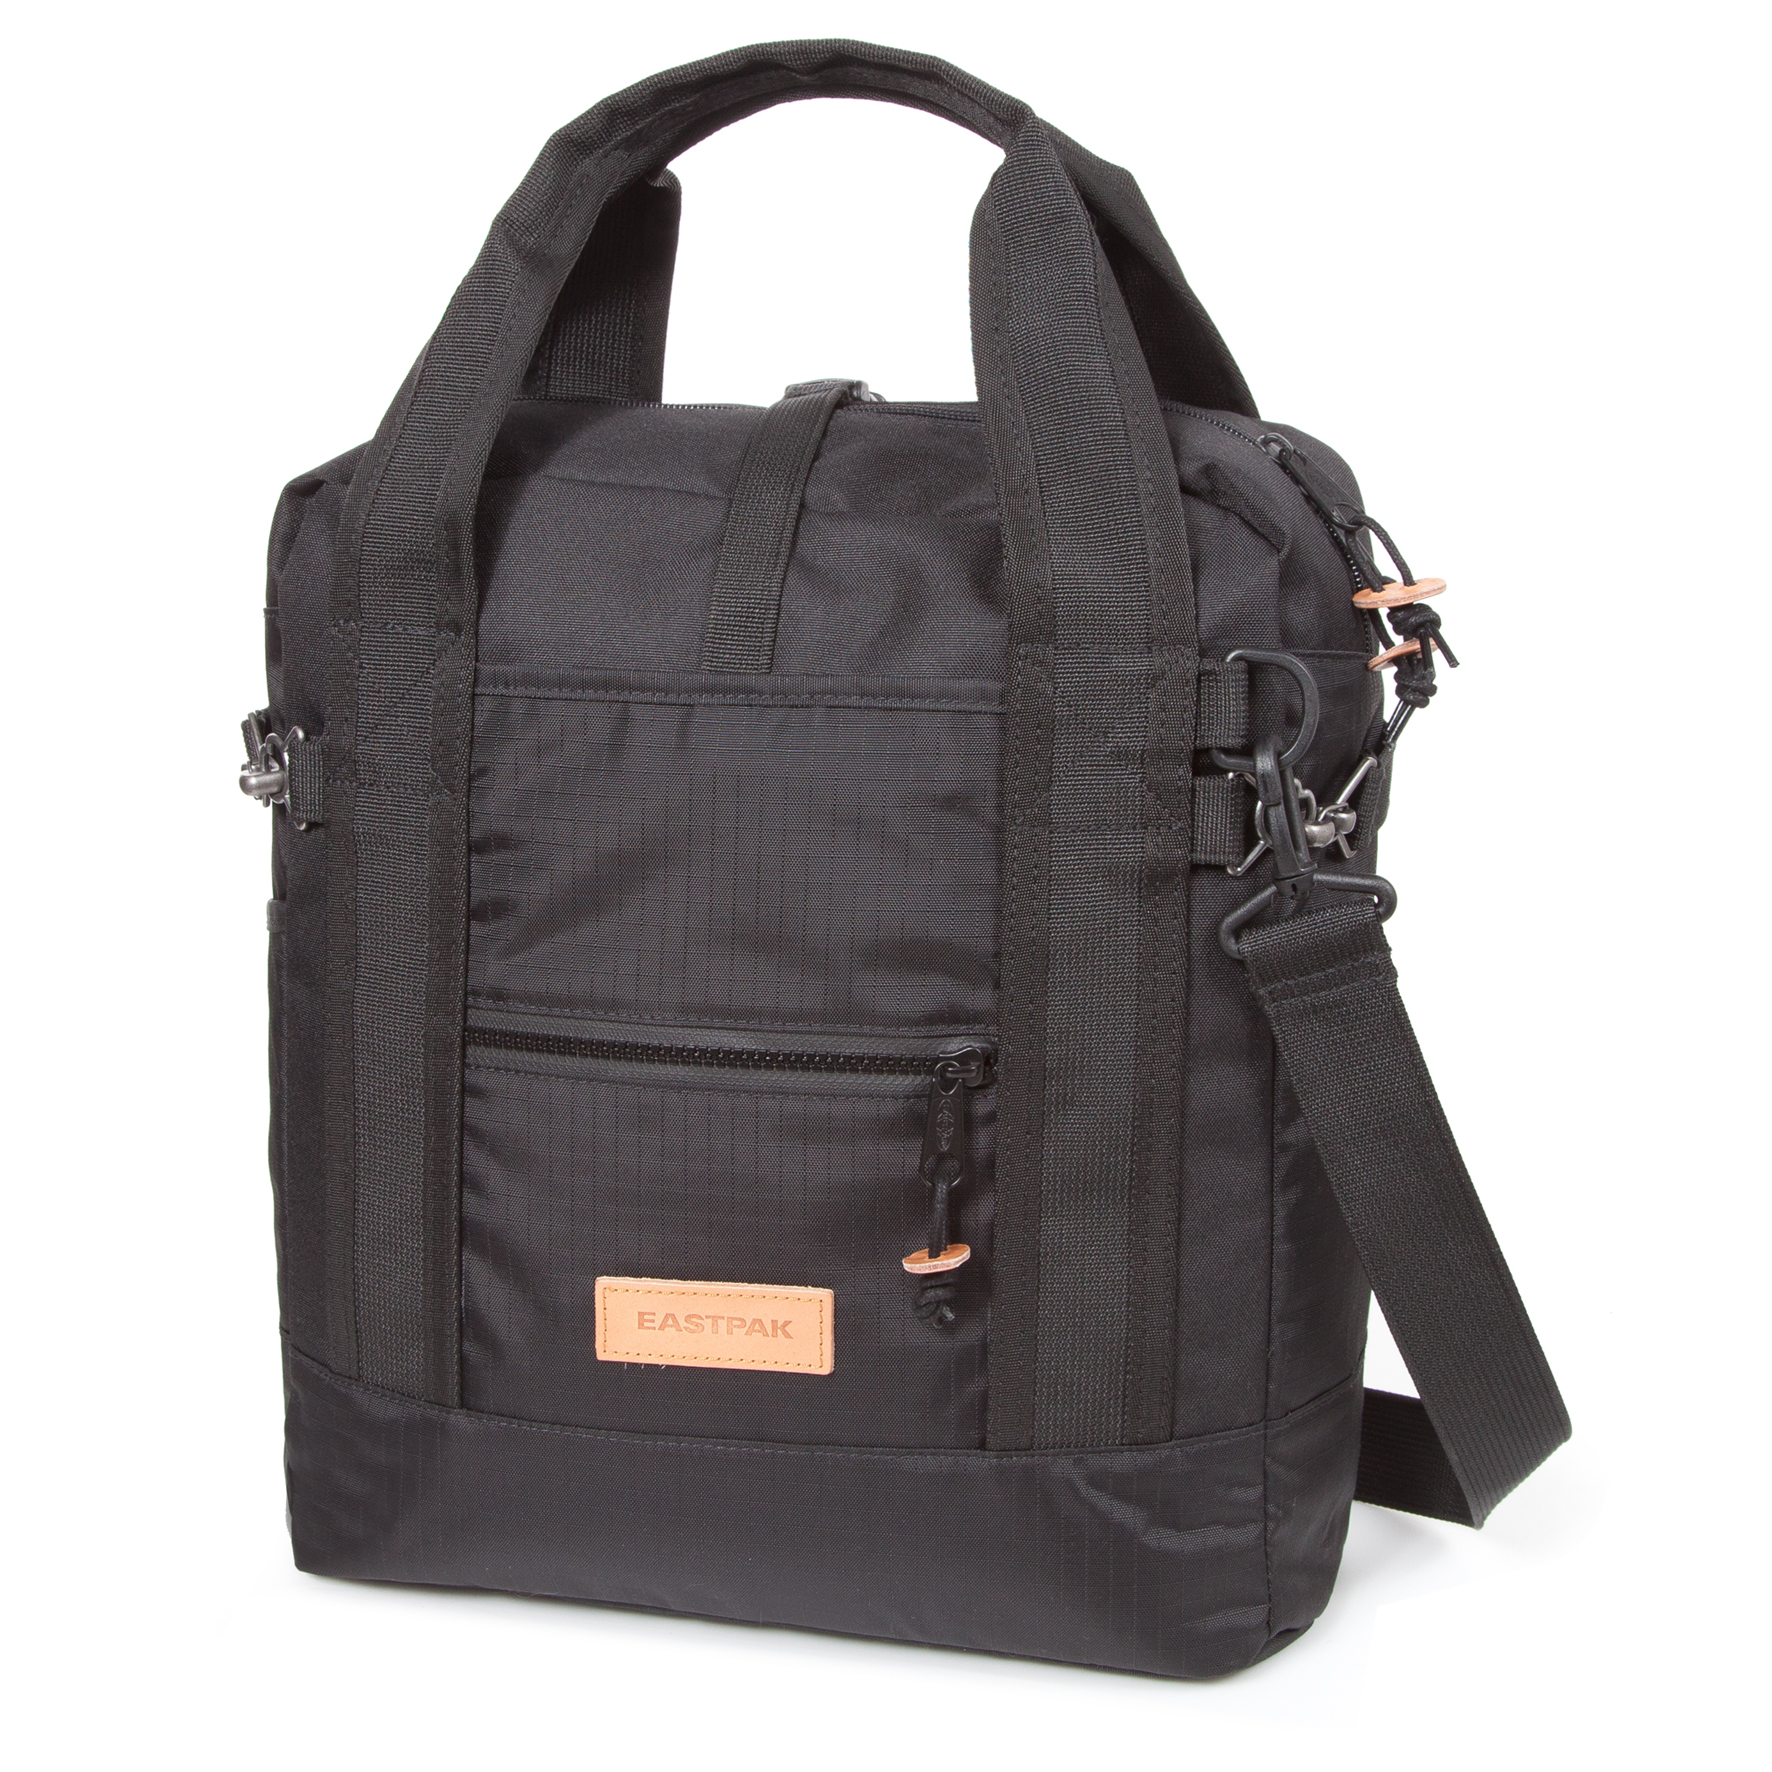 eastpak merge collection (3)